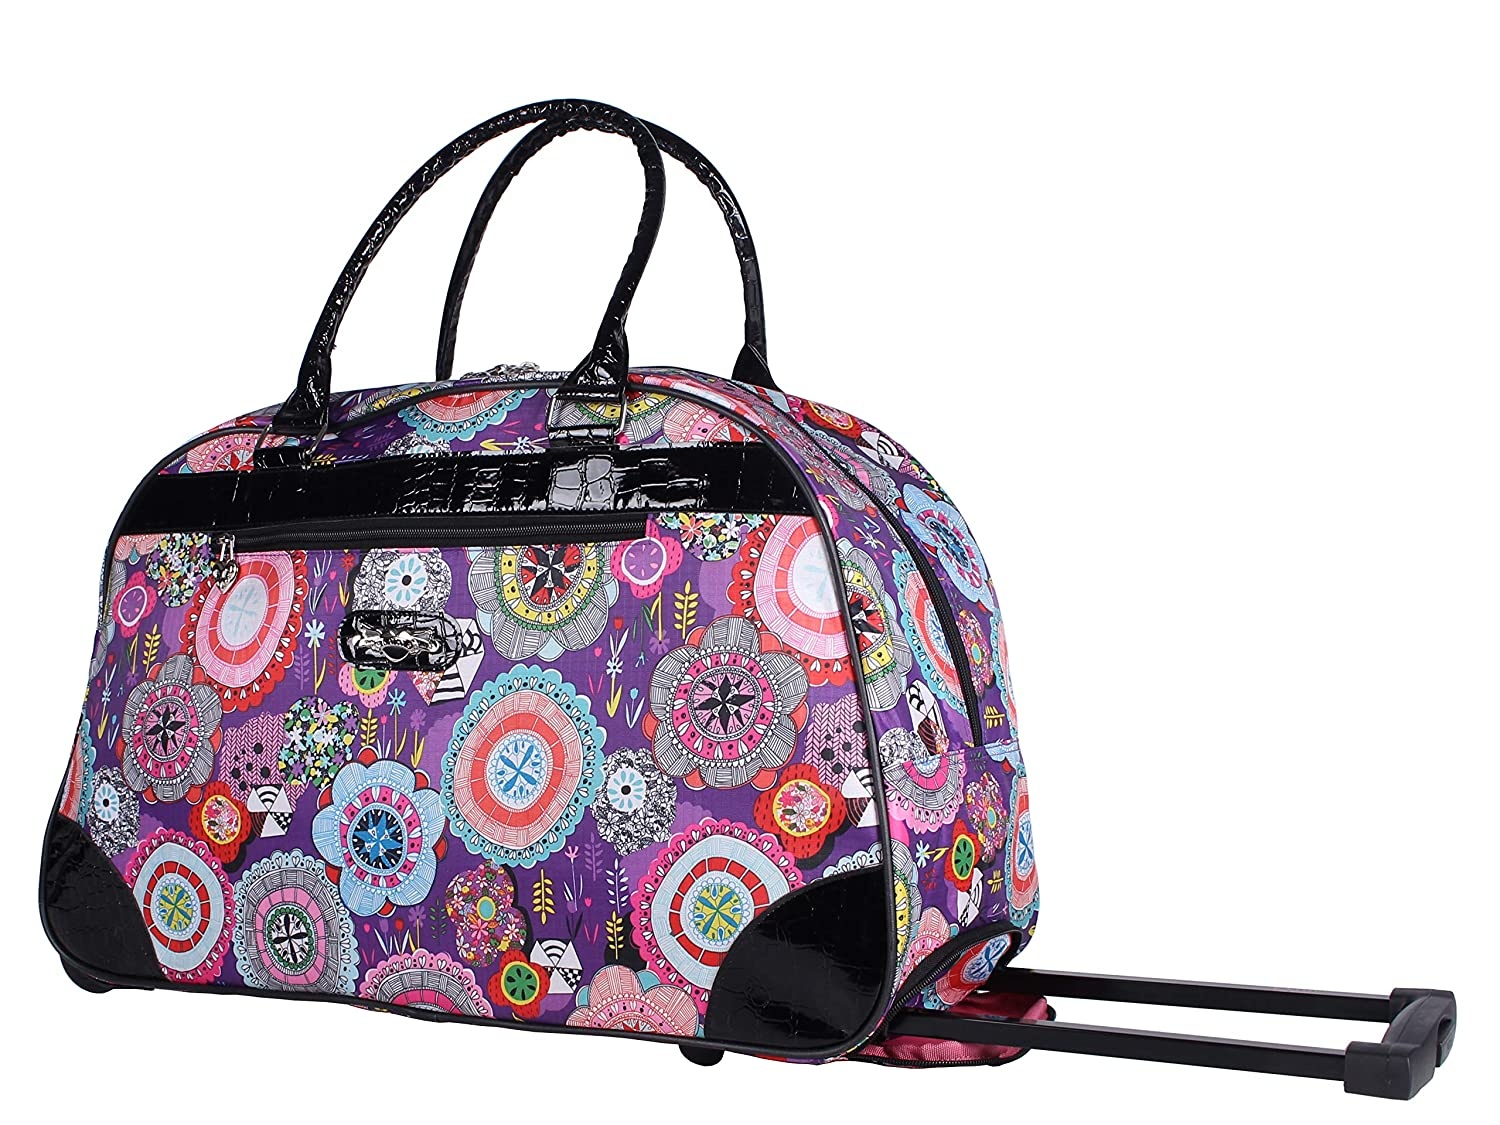 968355e2cf04 Kathy Van Zeeland Luggage 22 Inch Rolling Carry On Printed Wheeled Duffel  (Boquet purple, One_Size)